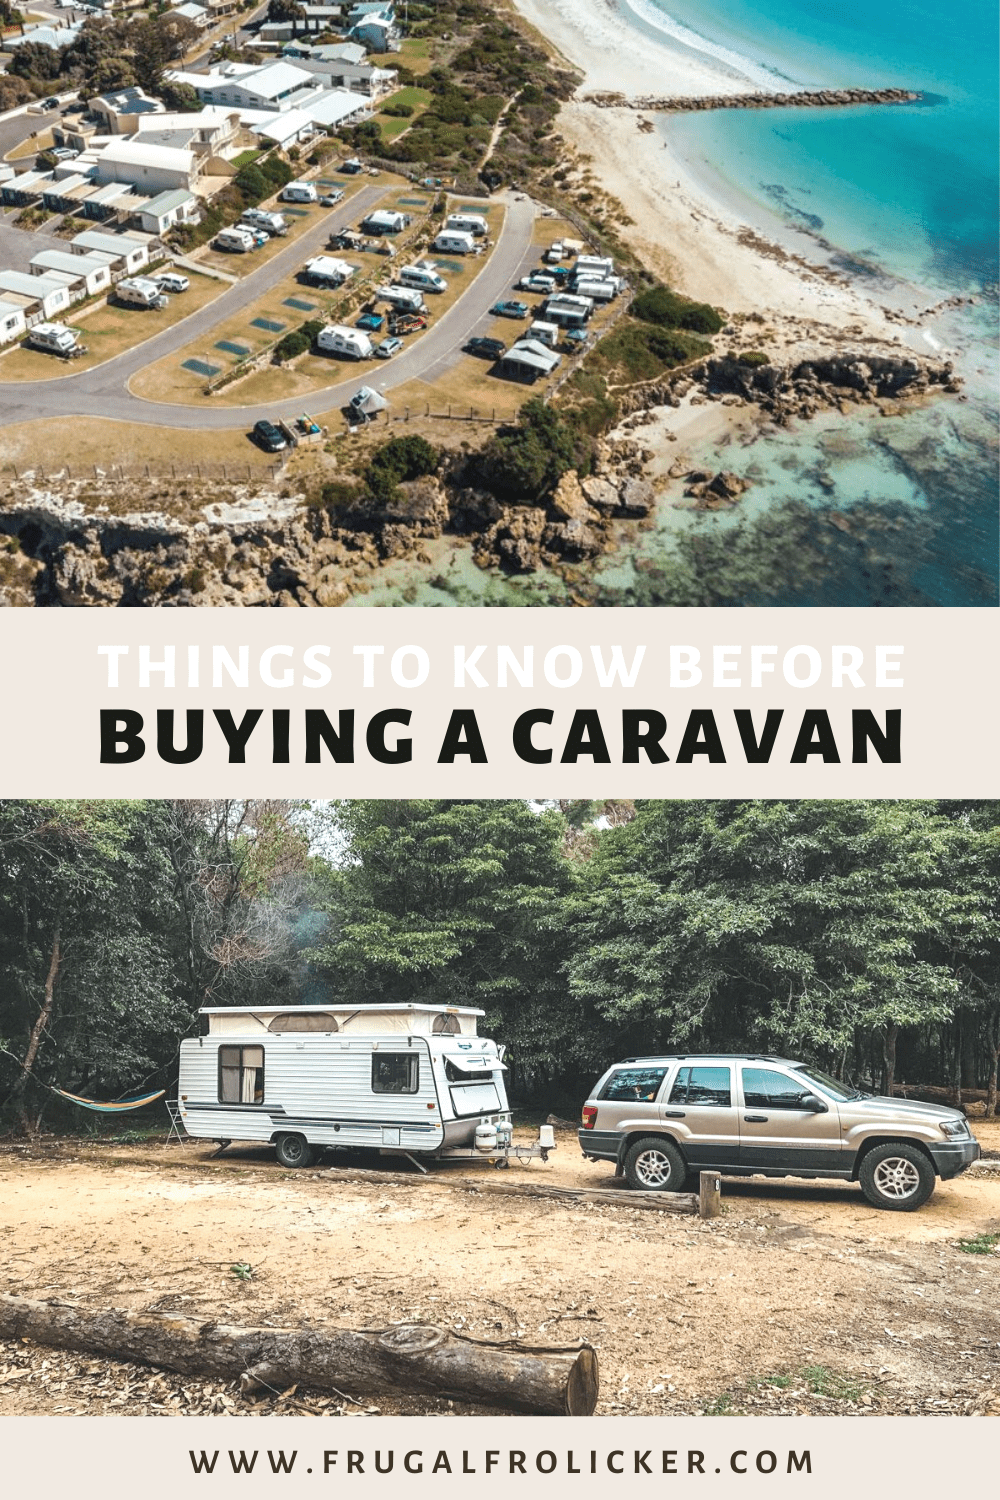 Buying a caravan: everything you should know